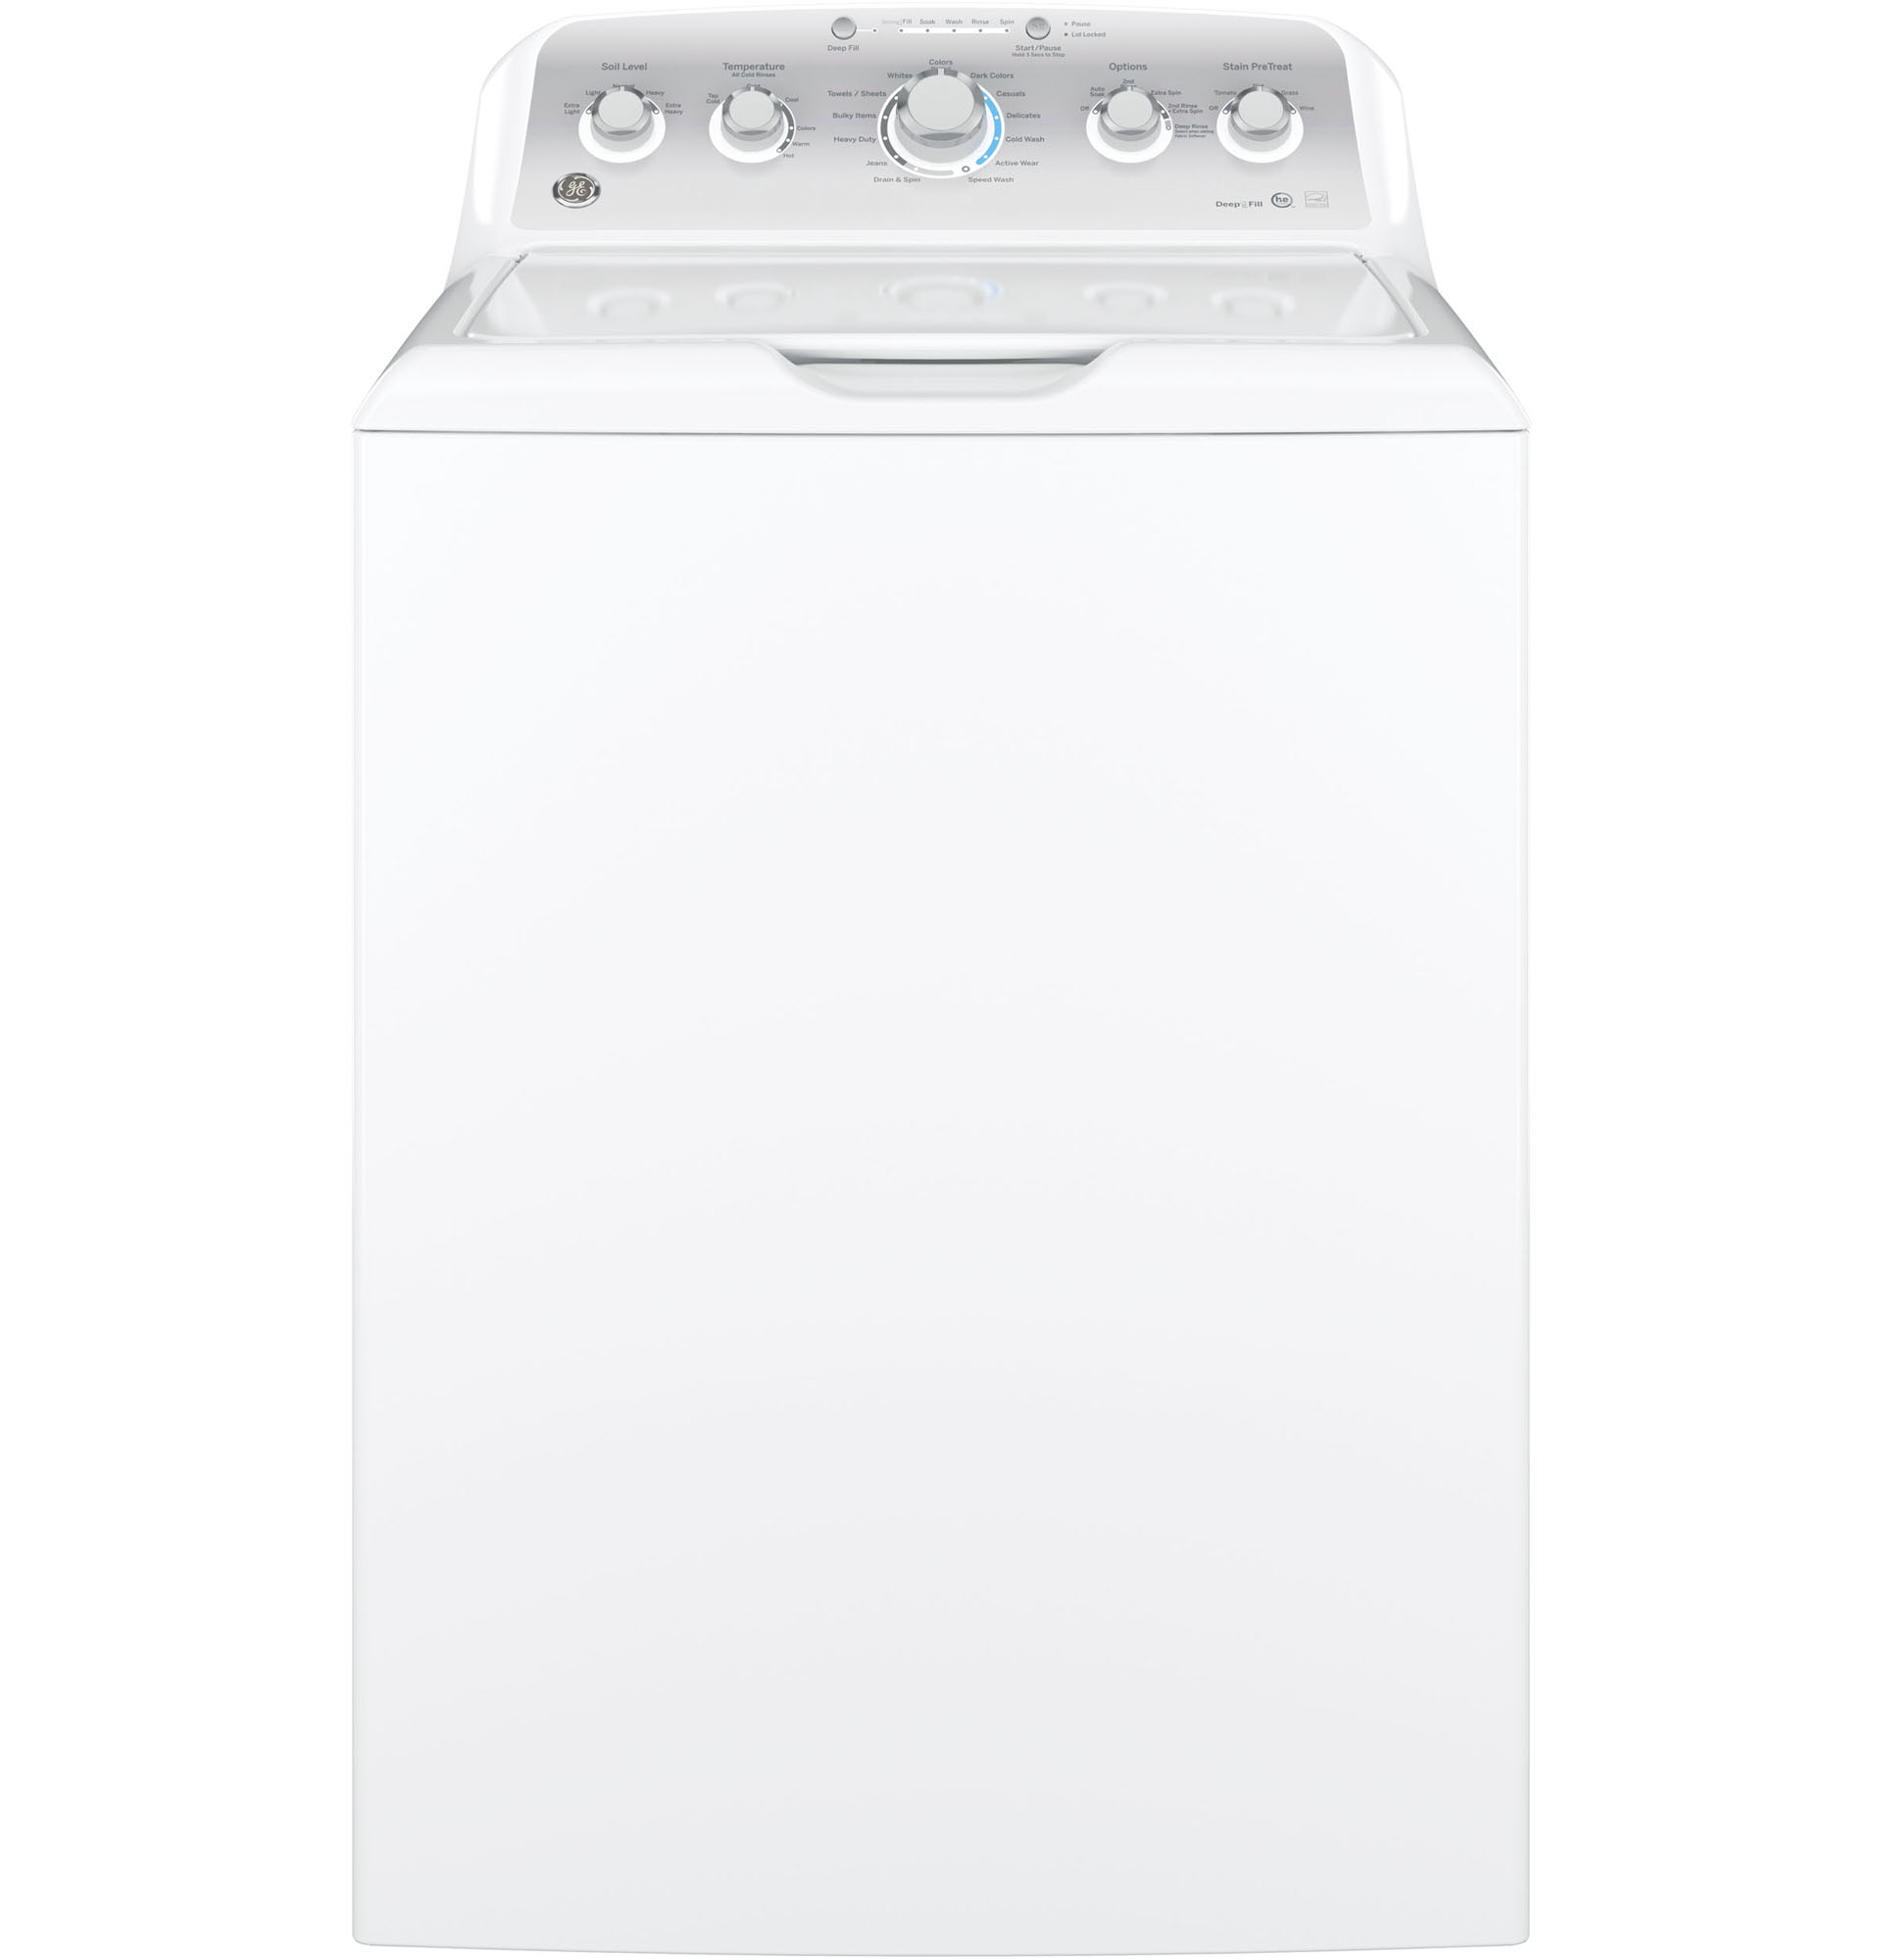 Hotpoint Top Loading Washing Machine Ge Appliances Gtw485asjws 42 Cu Ft Top Load Washer White